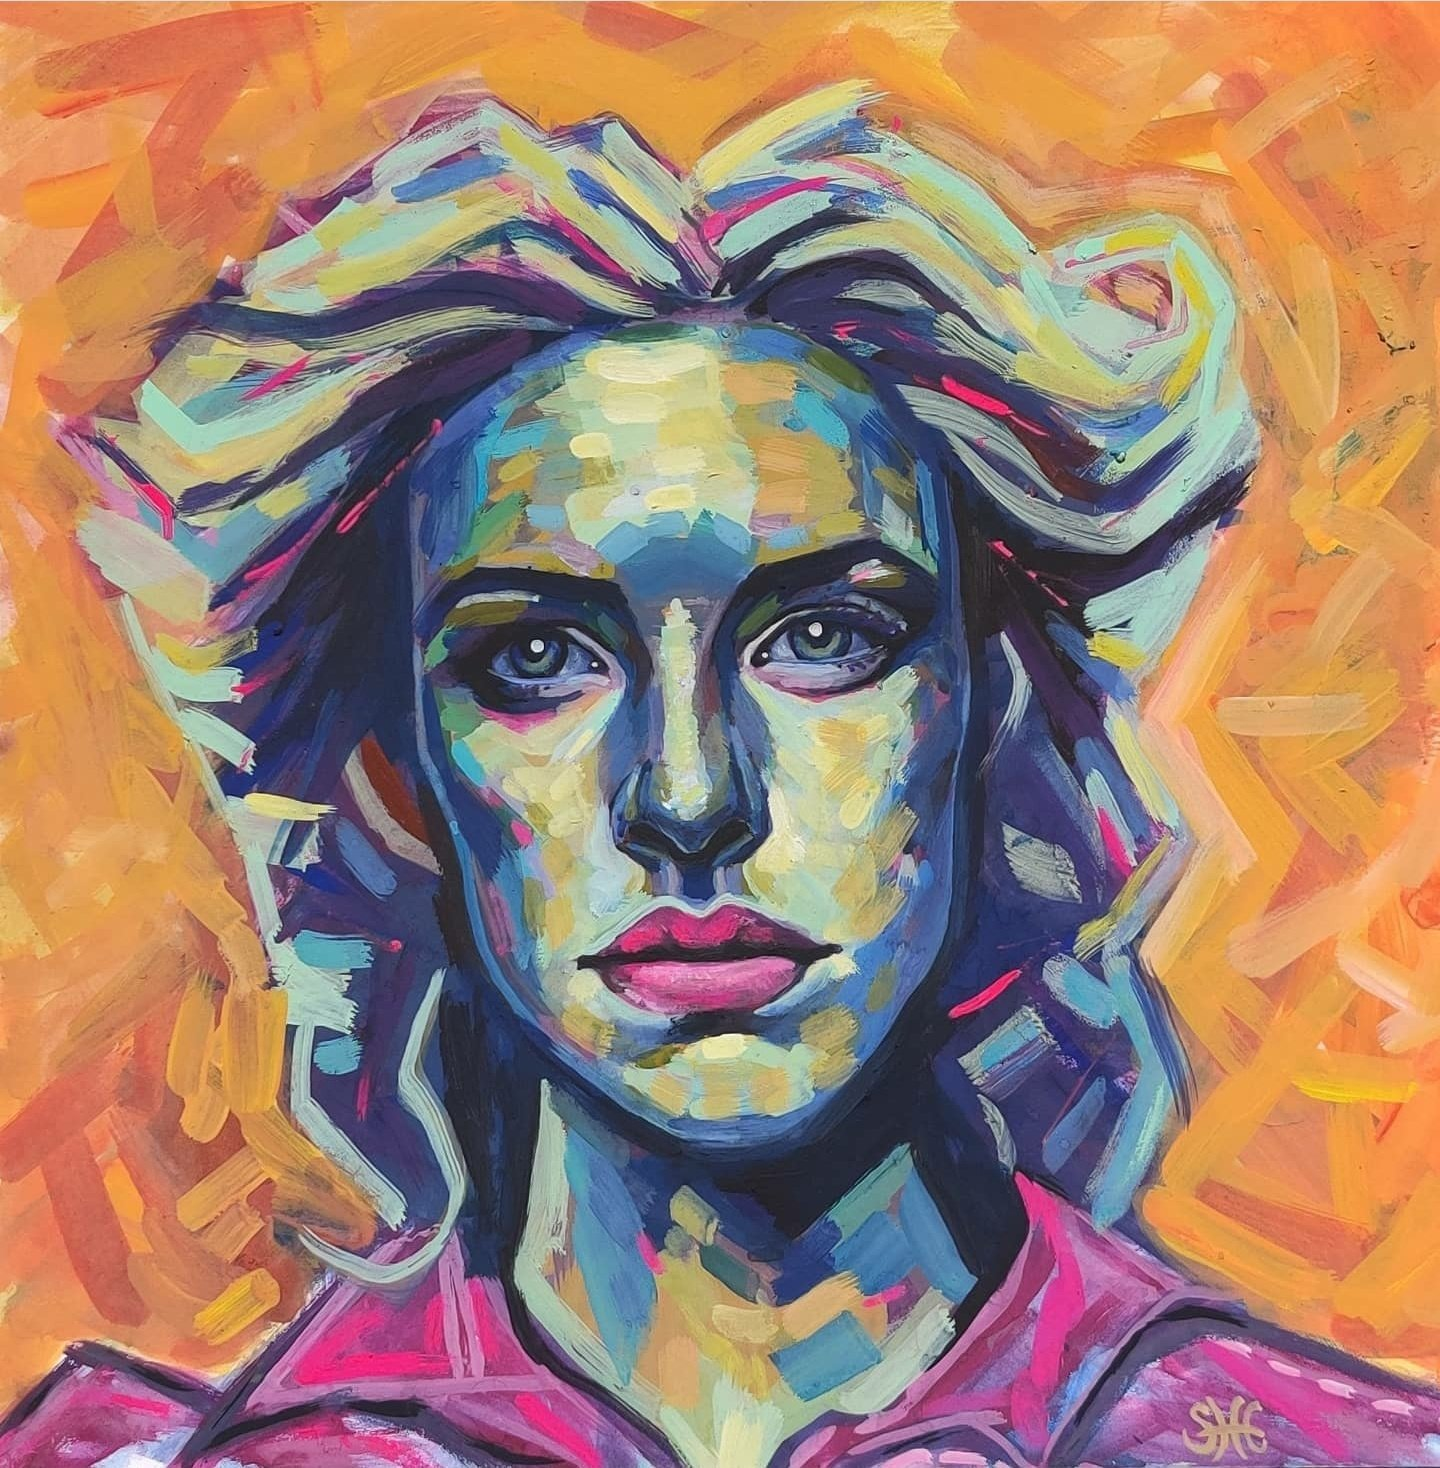 Woman in Gouache, 12x12, Gouache on Illustration Board, $500